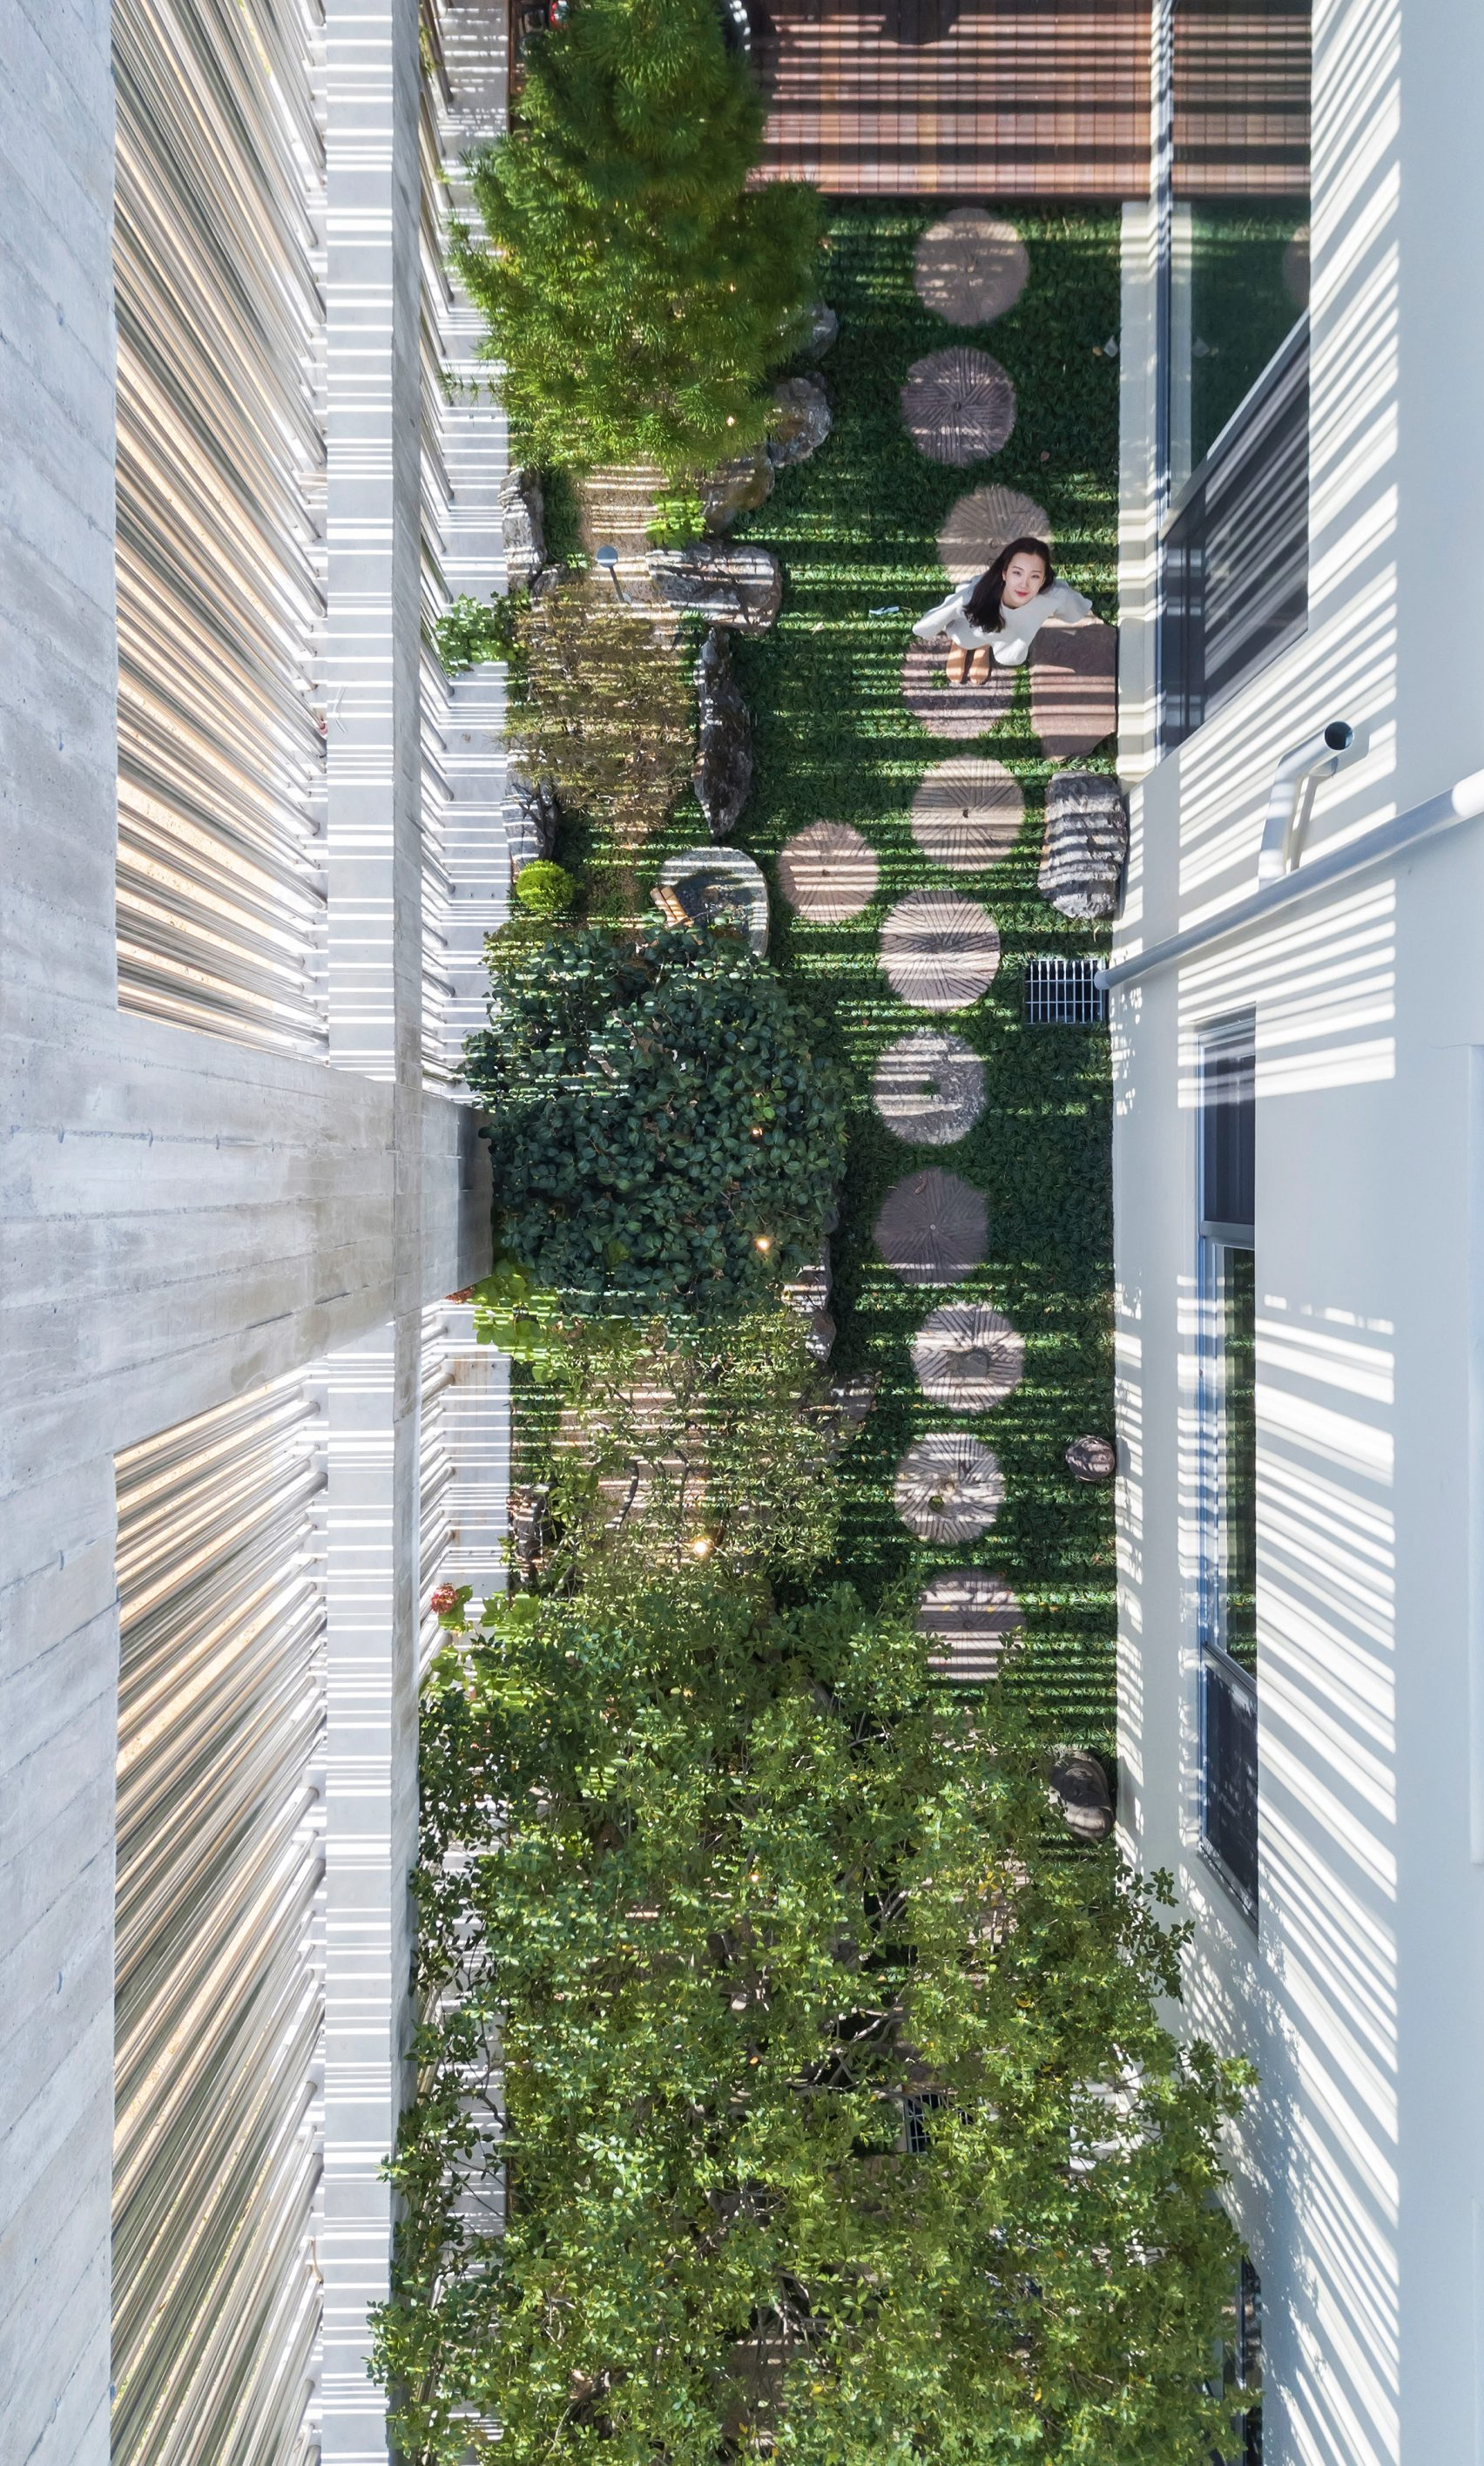 steel-grove-augmented-reality-architecture-residential-south-korea-courtyards-steel_dezeen_2364_col_30-1704x2831.jpg